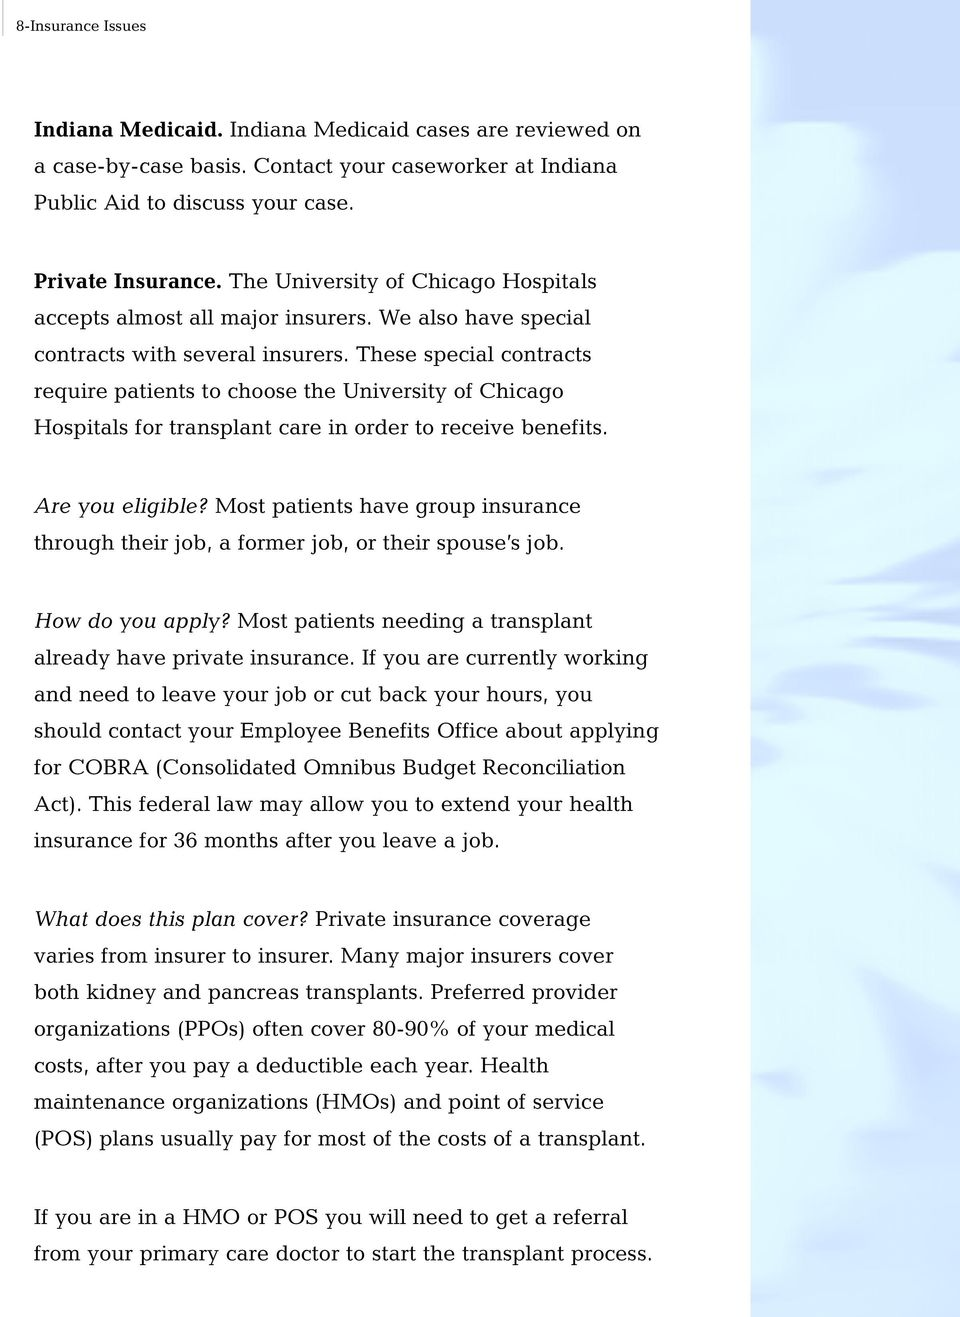 These special contracts require patients to choose the University of Chicago Hospitals for transplant care in order to receive benefits. Are you eligible?